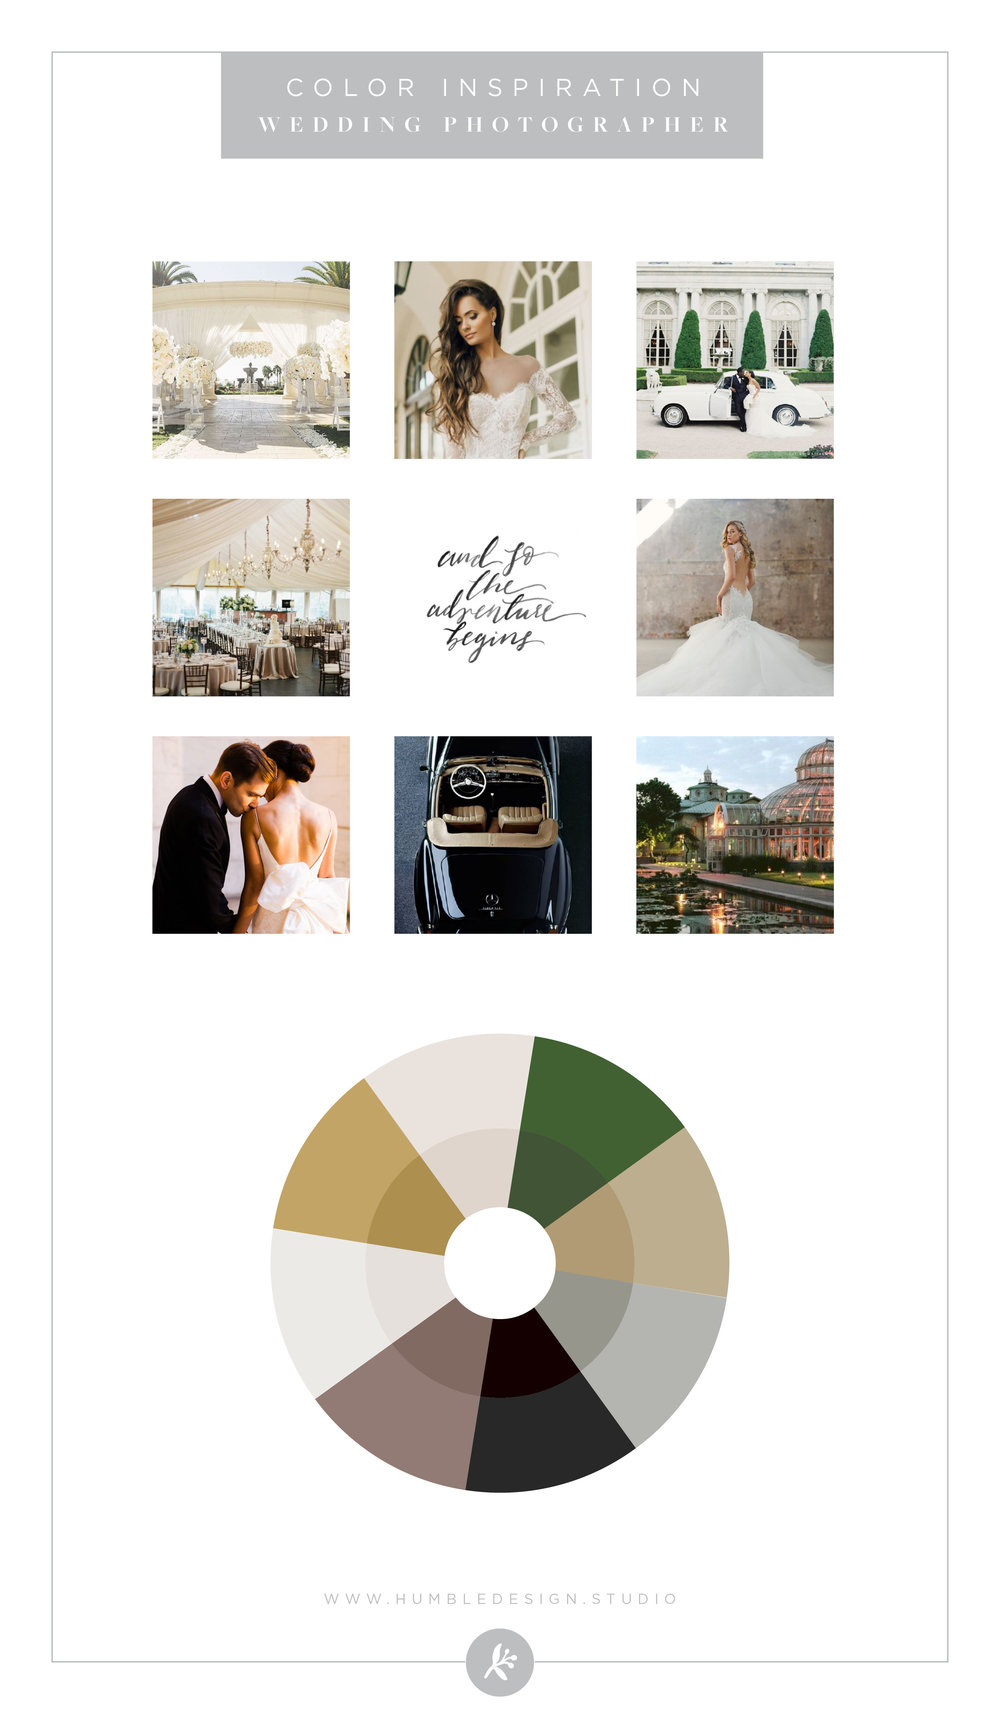 Wedding Photographer Color Palette.jpg